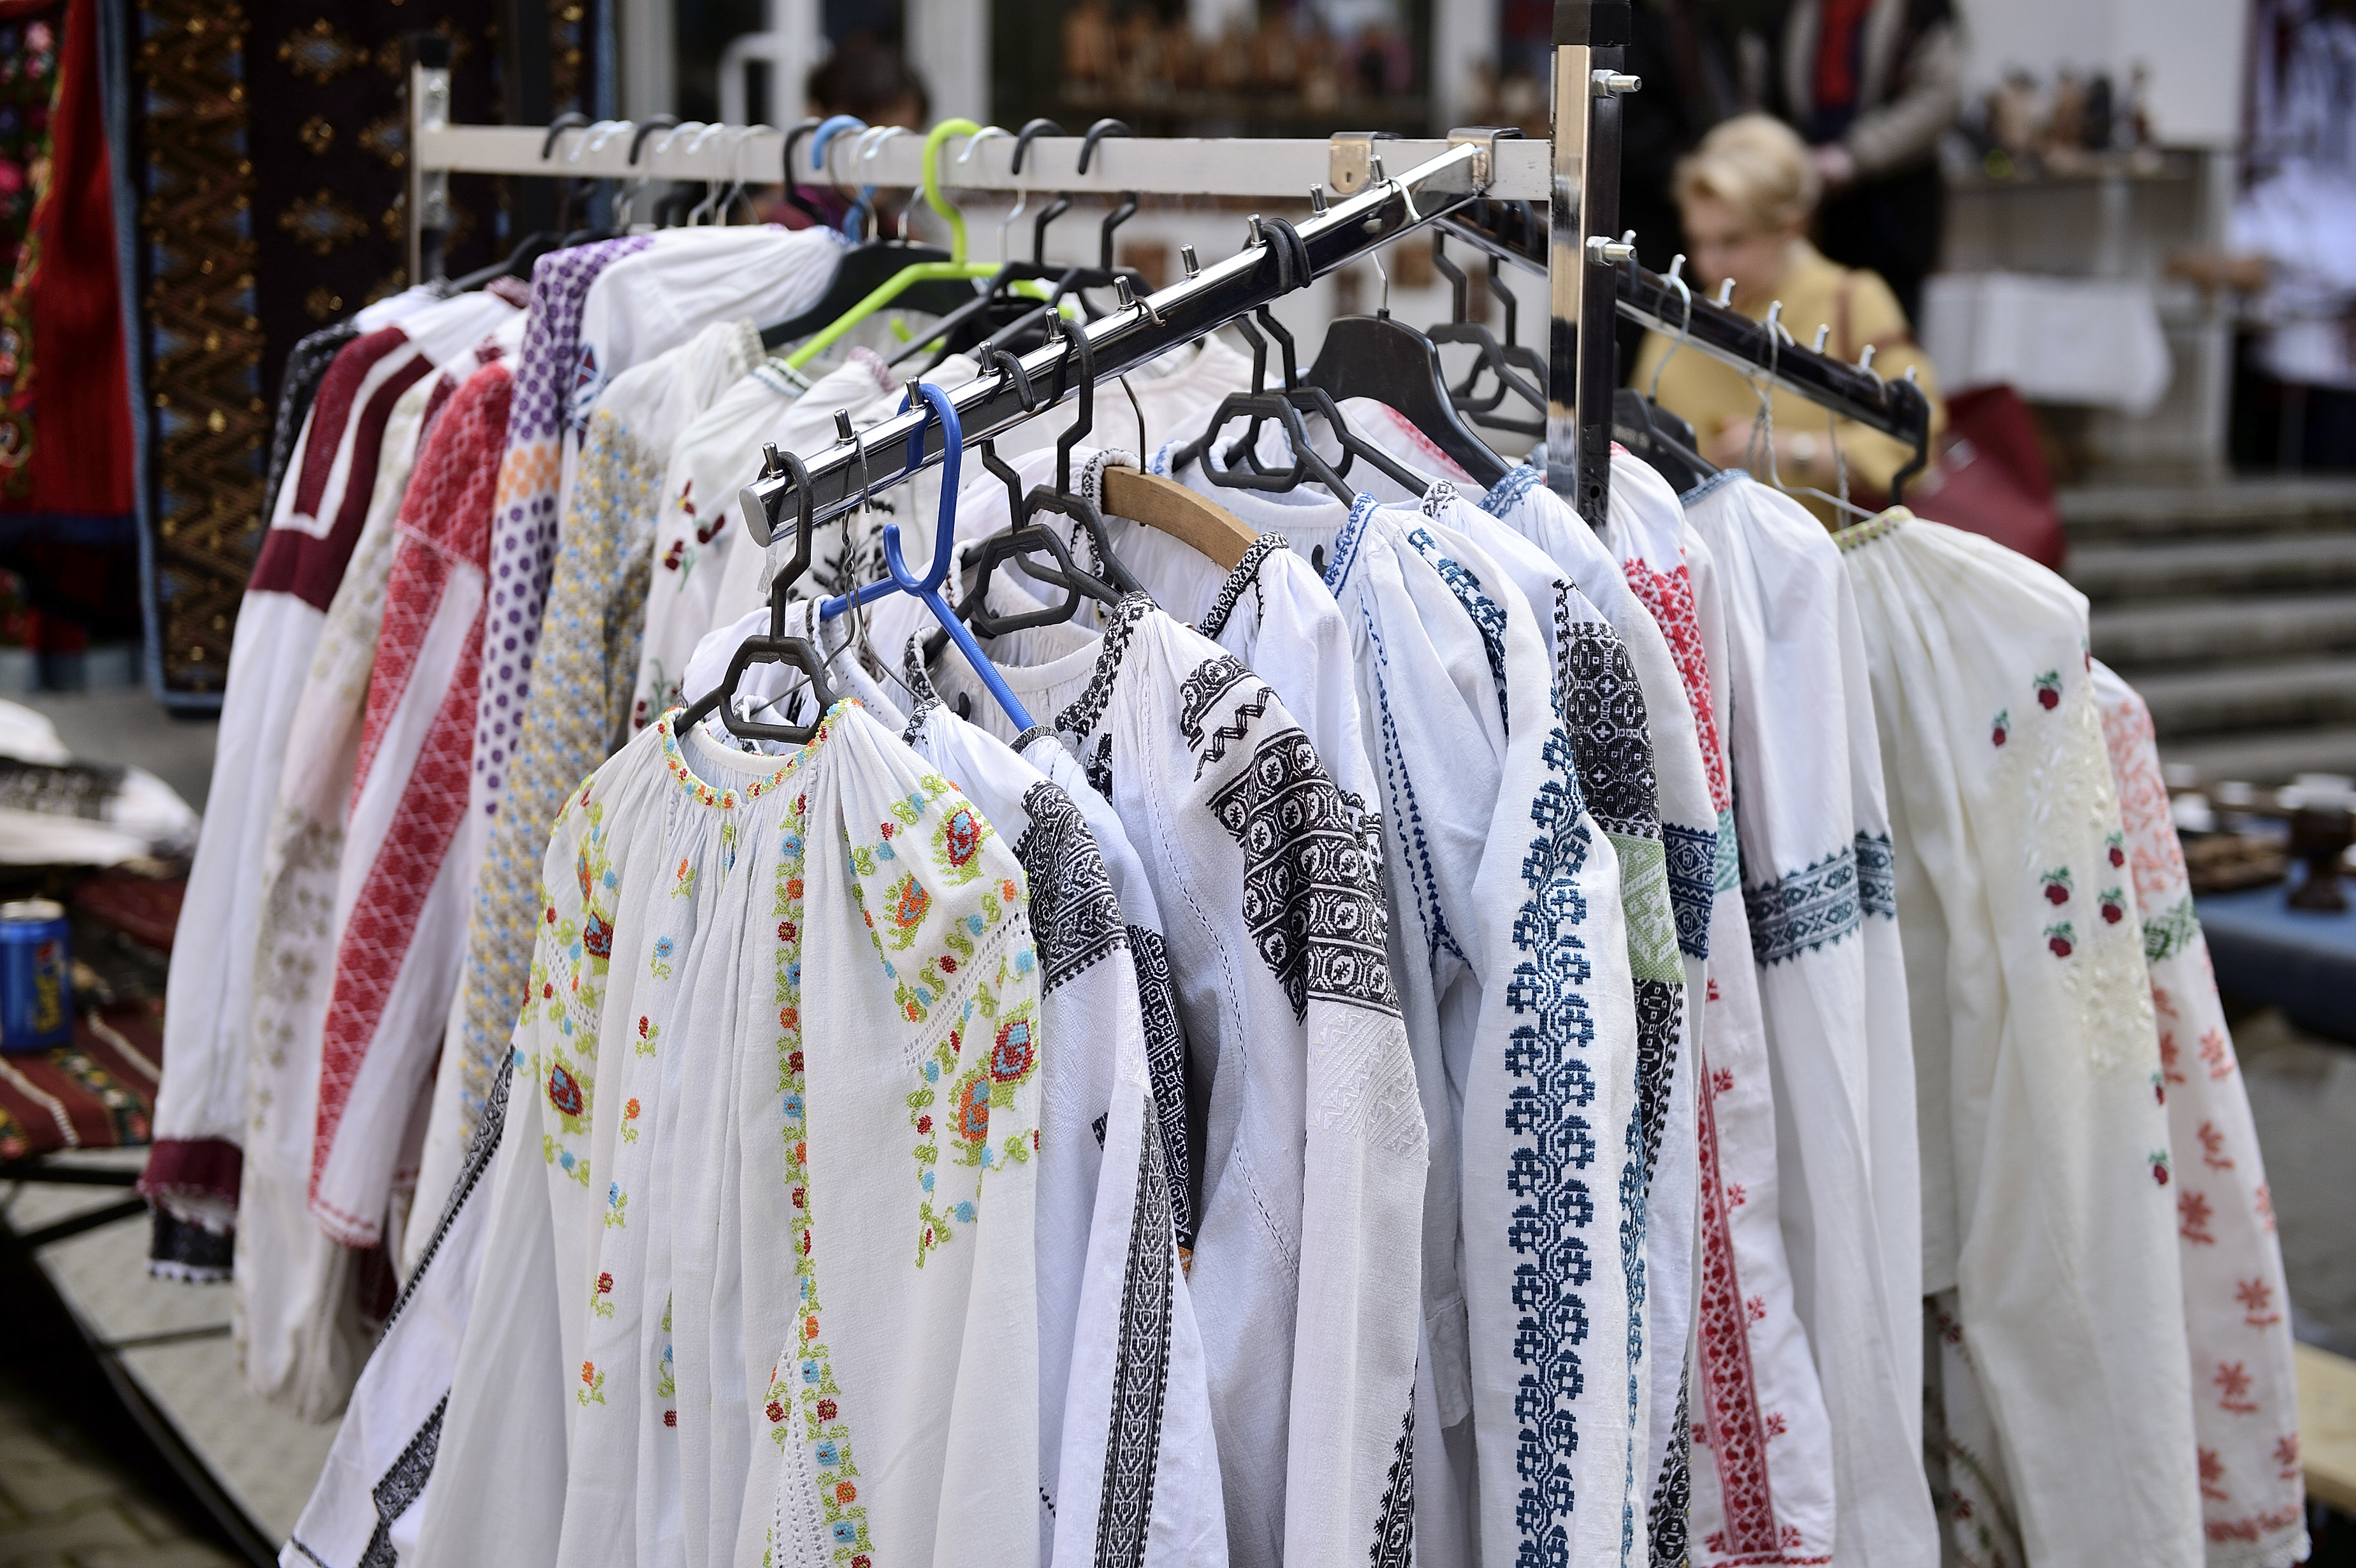 Authentic Romanian blouses can be found at most fairs and traditional bazaars all over the country. MIHAI DASCALESCU / MEDIAFAX FOTO